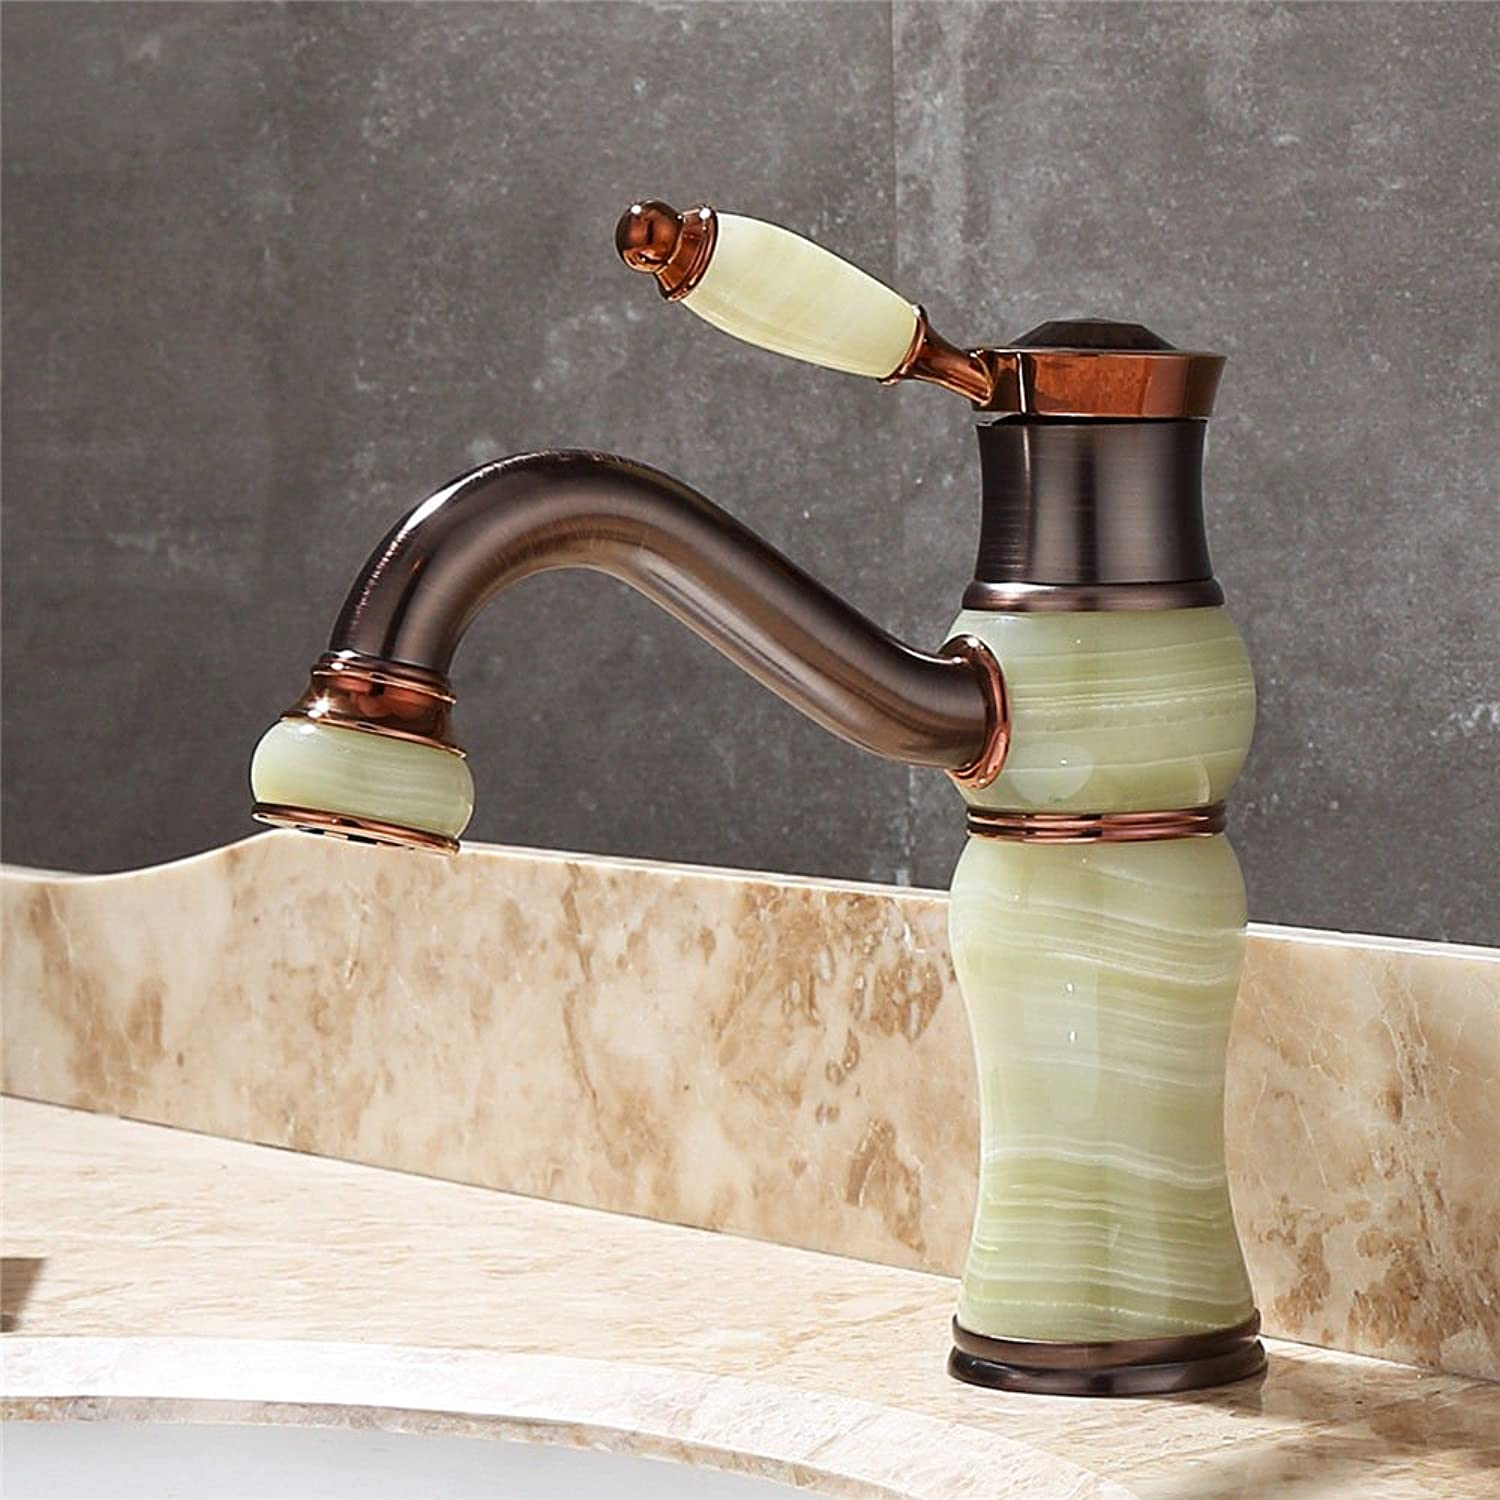 Lalaky Taps Faucet Kitchen Mixer Sink Waterfall Bathroom Mixer Basin Mixer Tap for Kitchen Bathroom and Washroom Full Copper pink gold Jade redating Sapphire